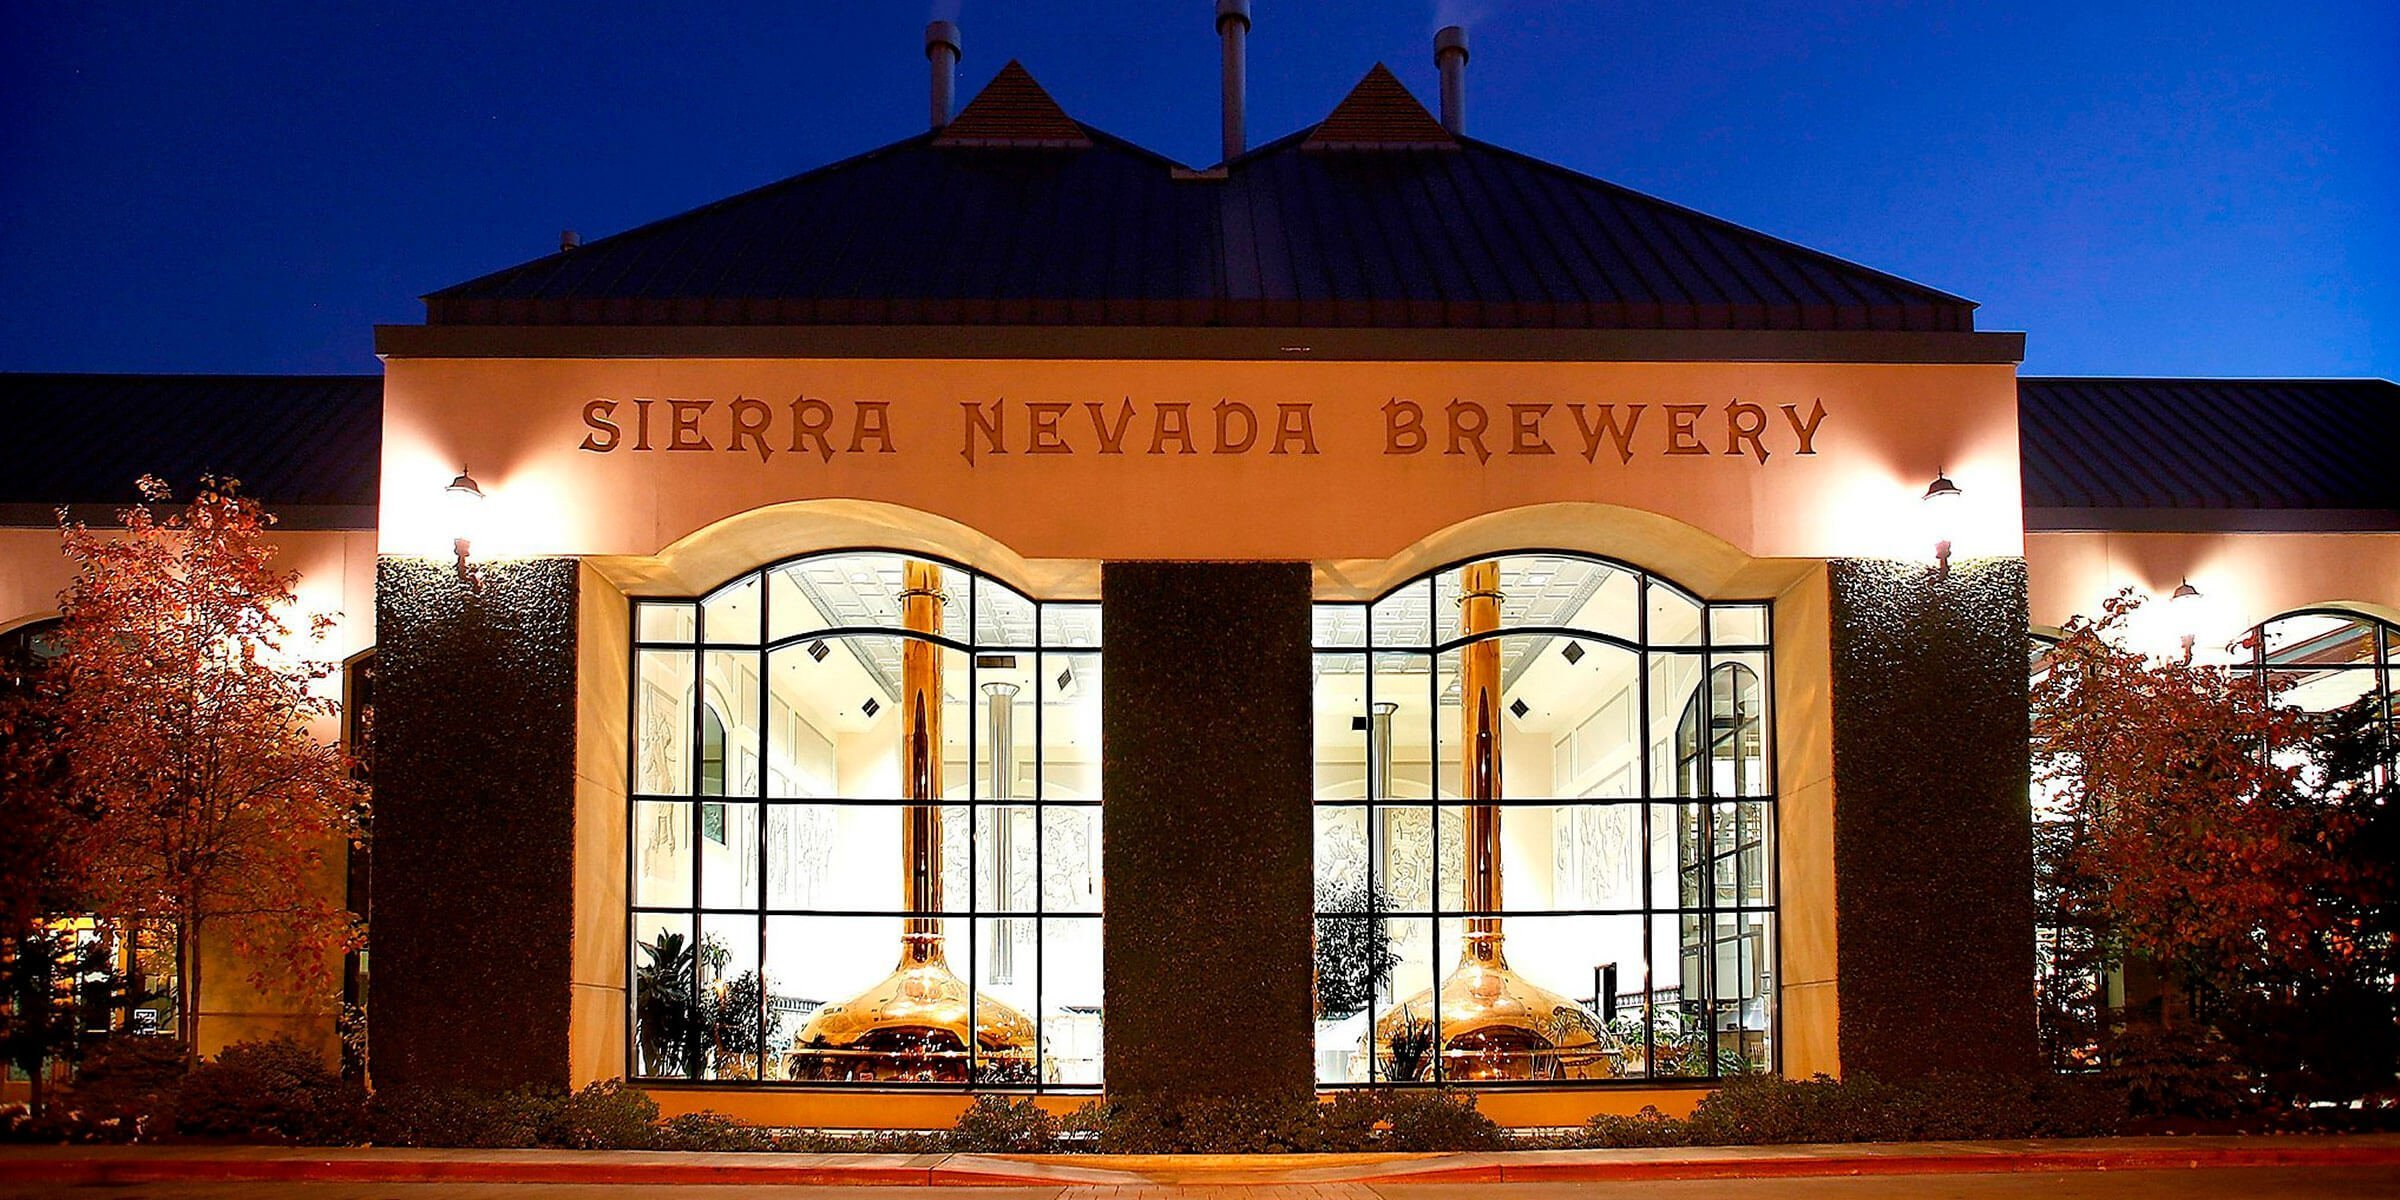 Outside the Brewery of Sierra Nevada Brewing Co. in Chico, California